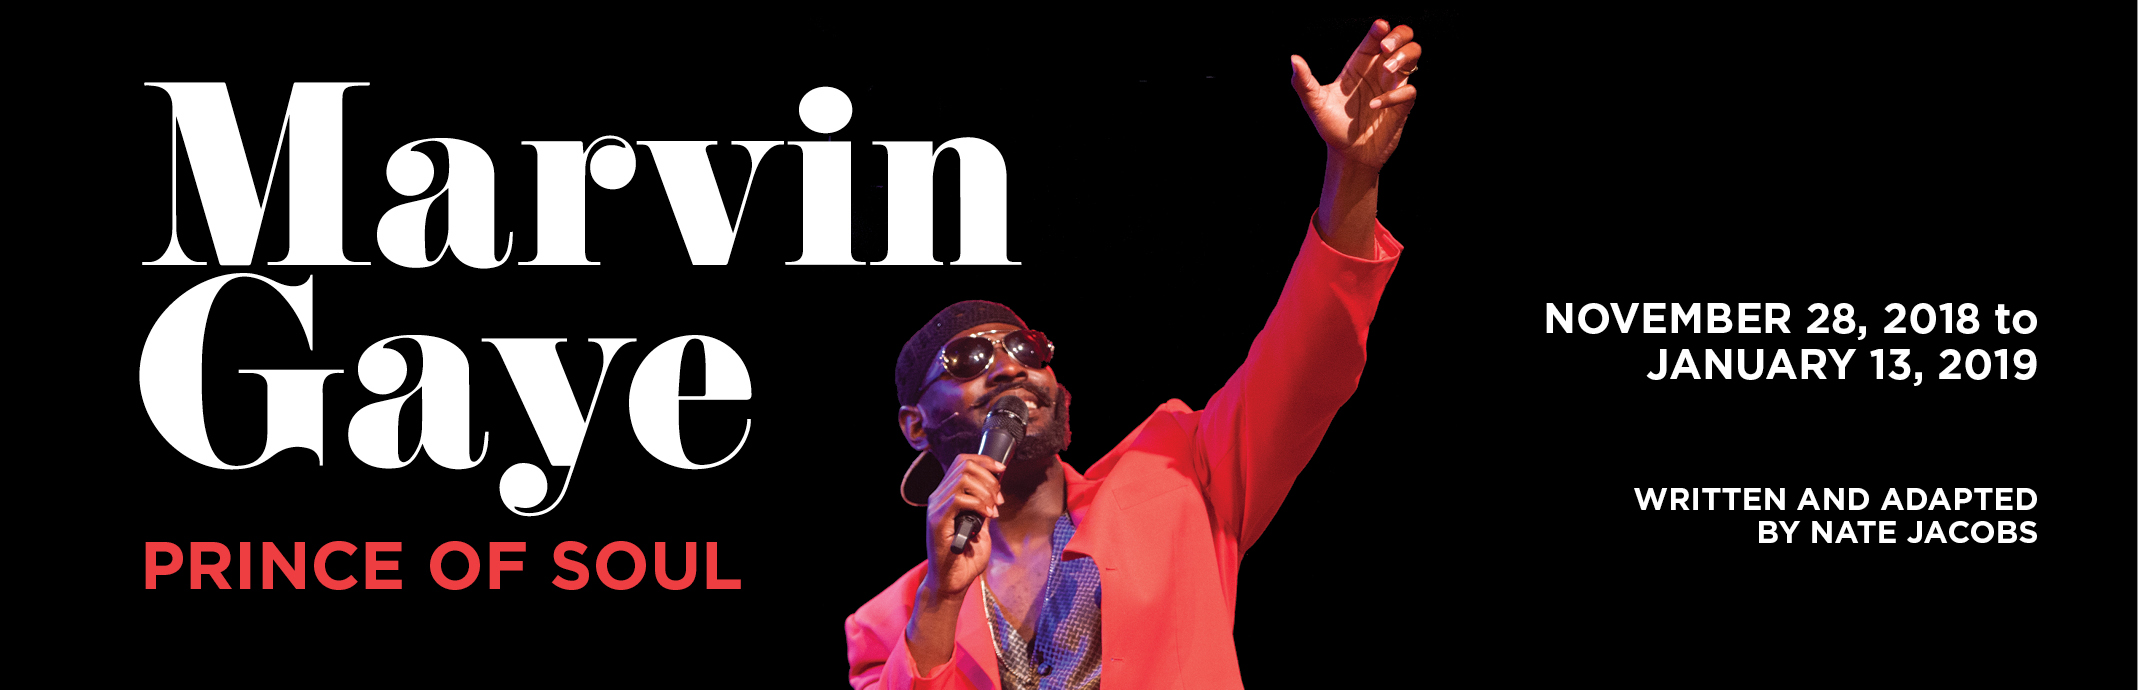 Marvin Gaye Prince of Soul November 28, 2018 to January 13, 2019 Written and Adapted by Nate Jacobs